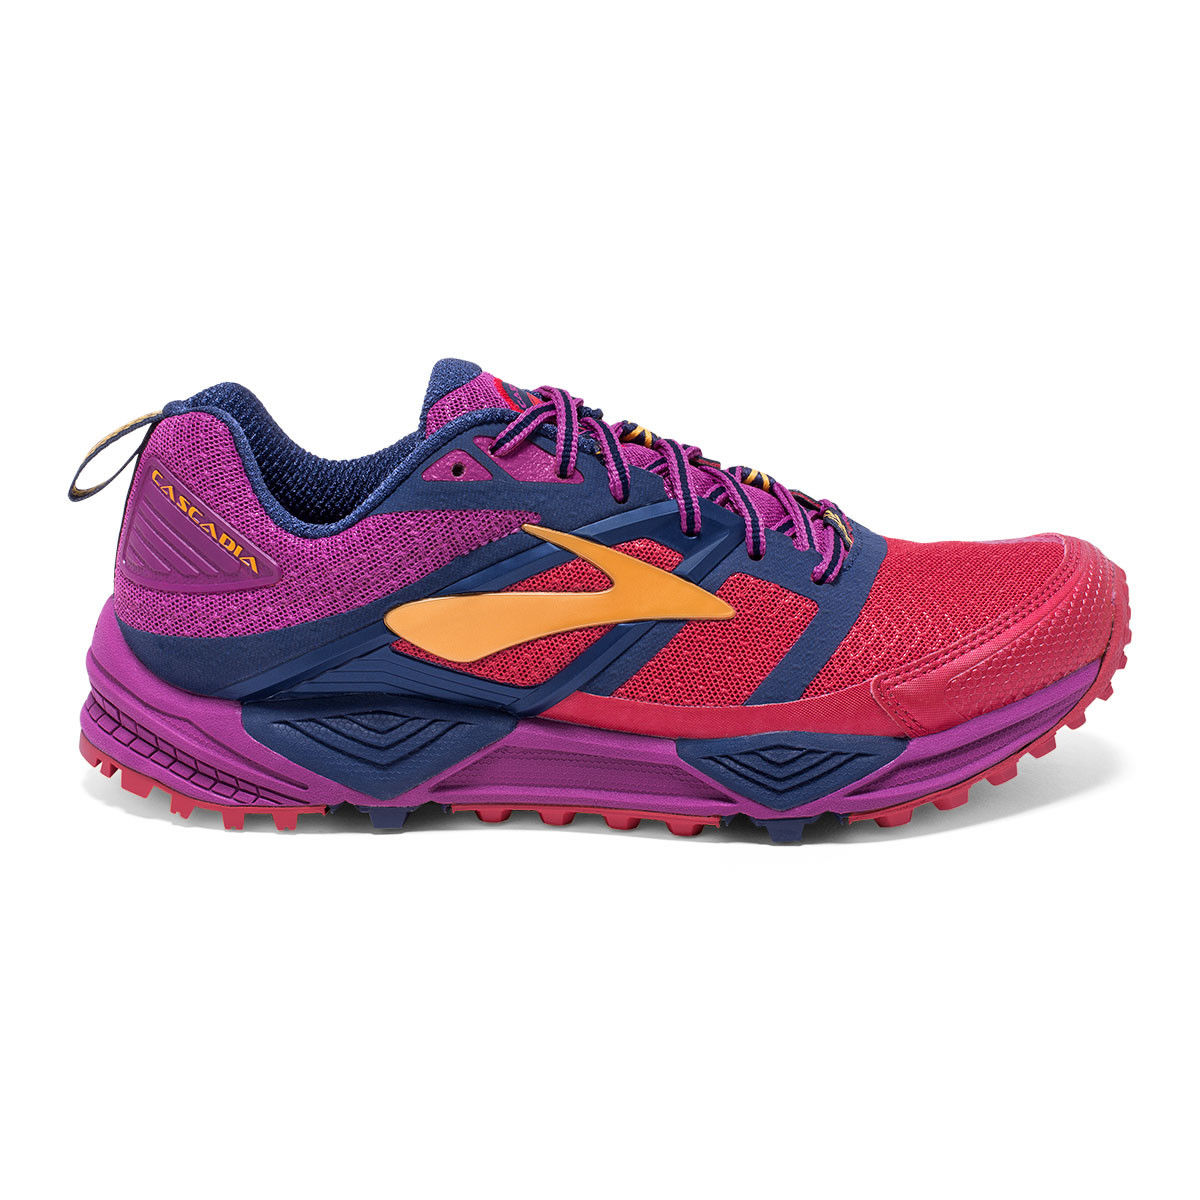 SCARPA TRAIL RUNNING BROOKS CASCADIA 12 WOMEN red peacoat 644.jpg